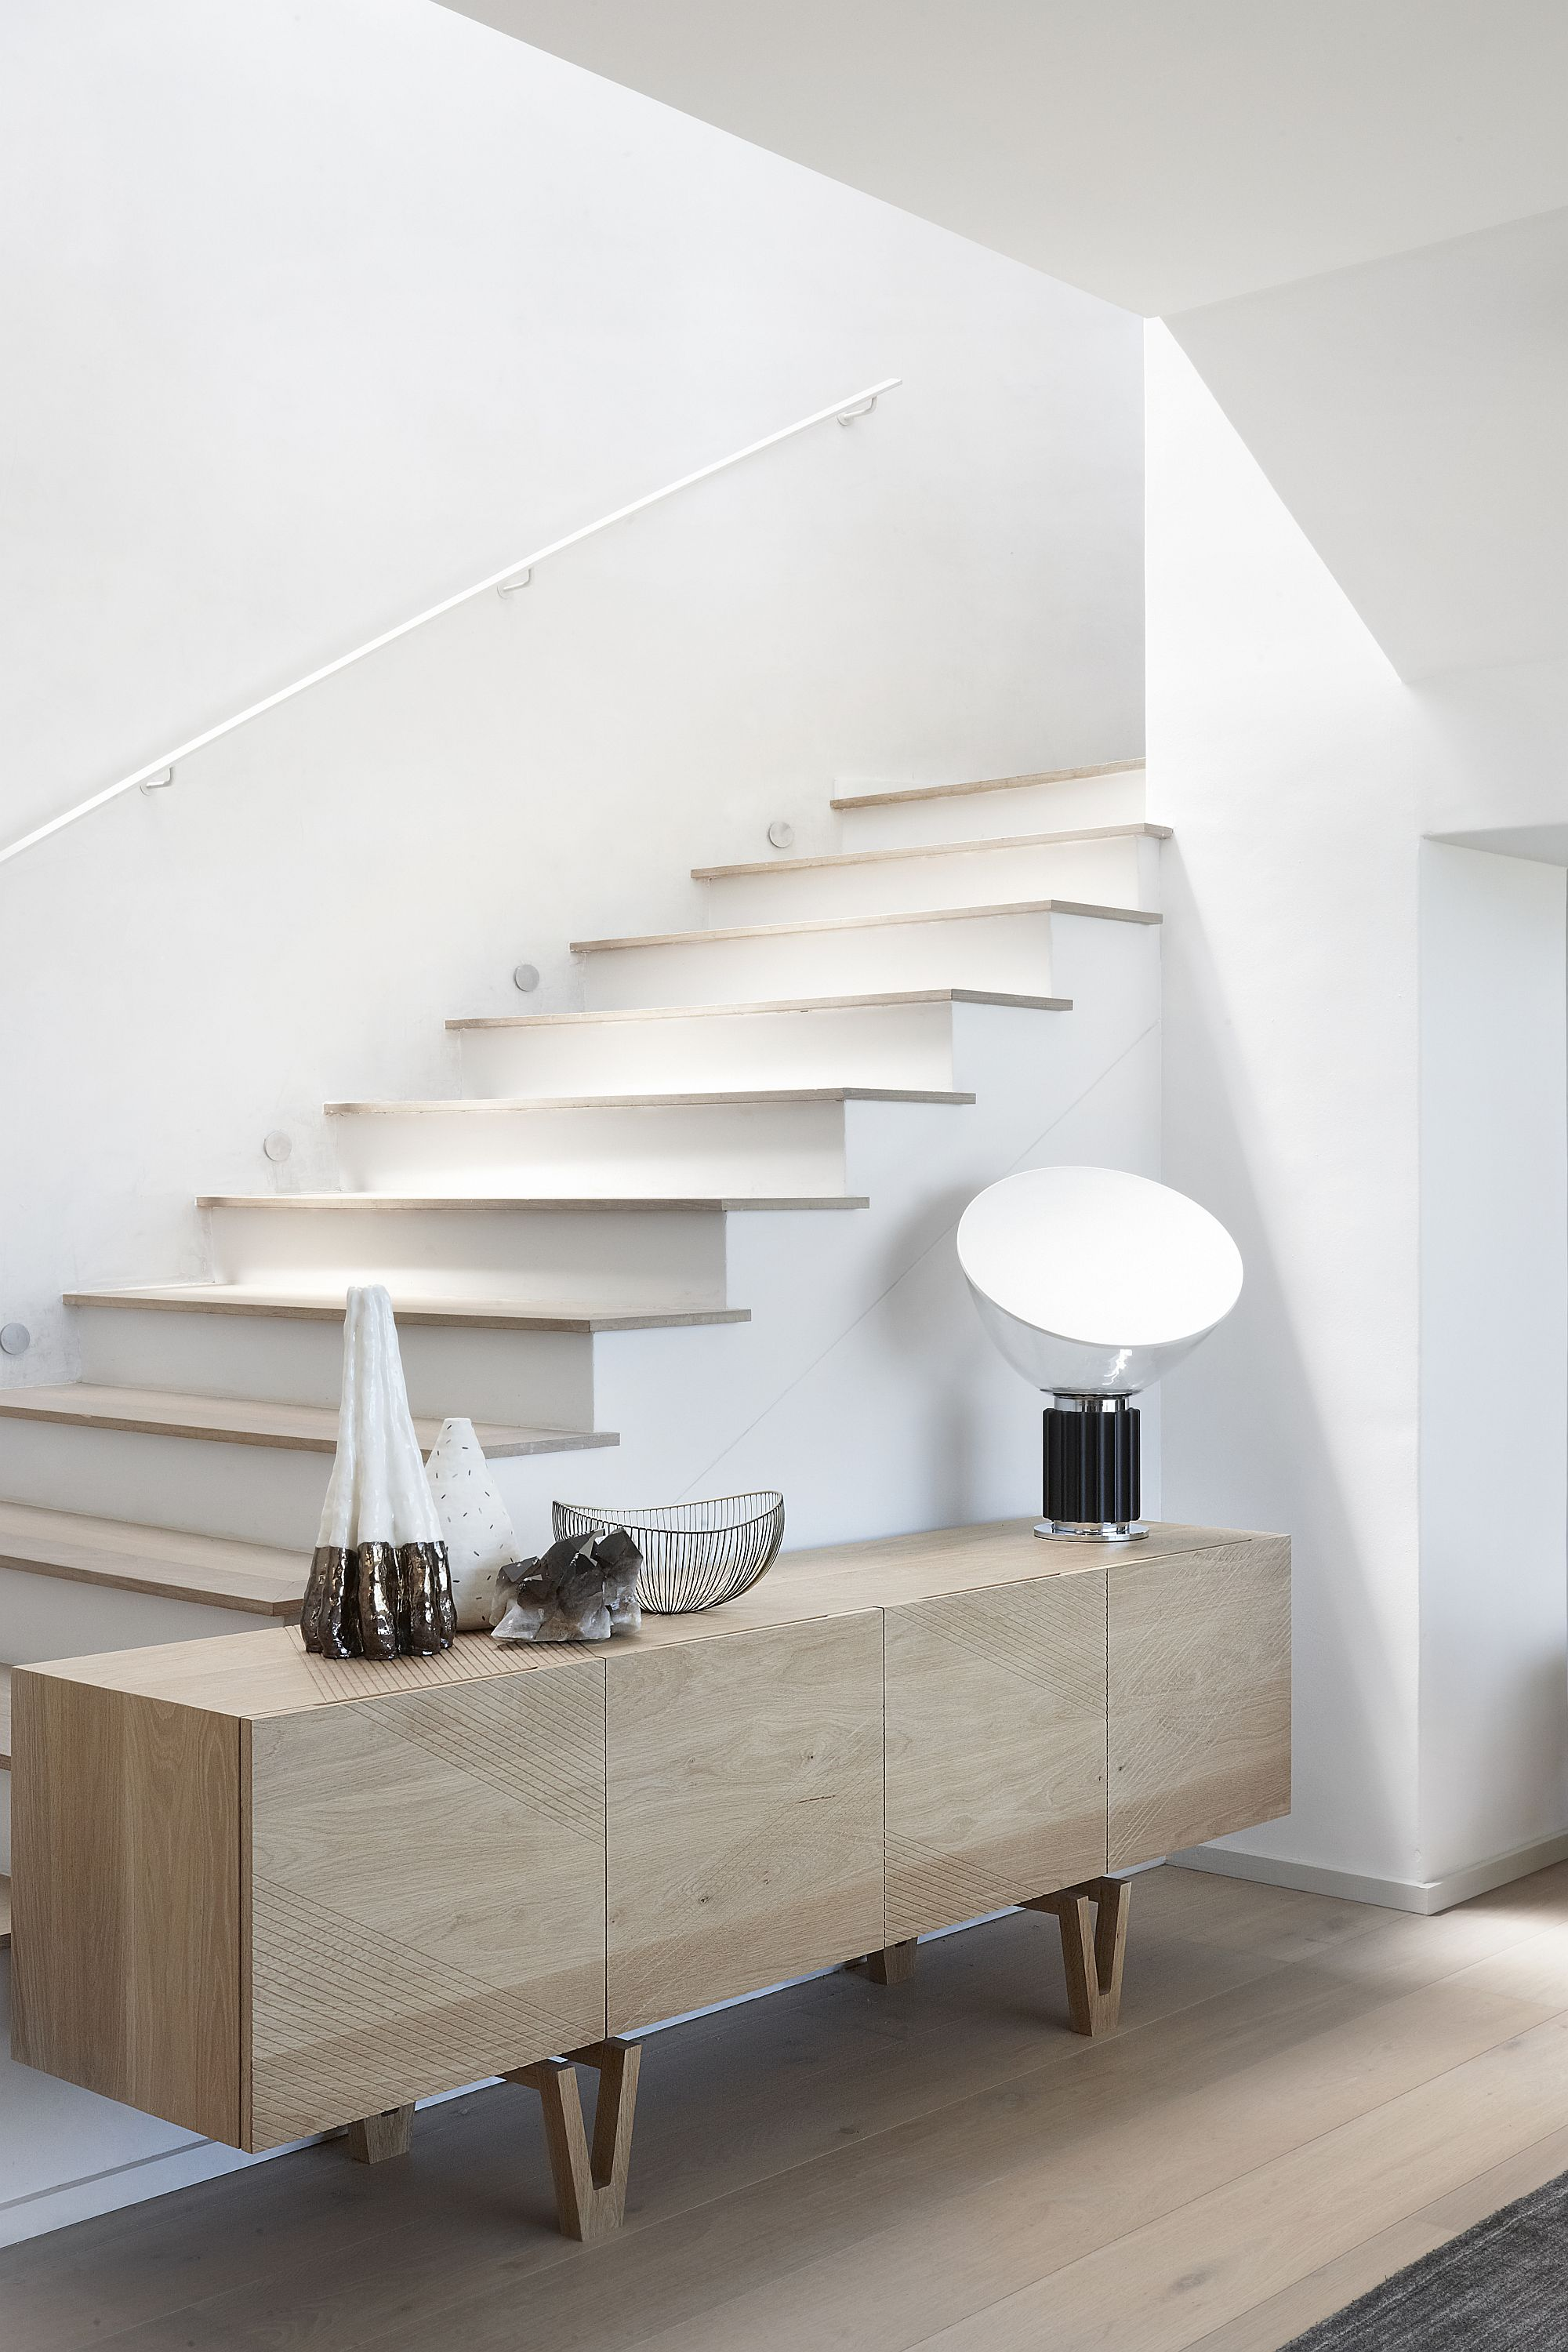 Side table next to the staircase has multiple storage and display options